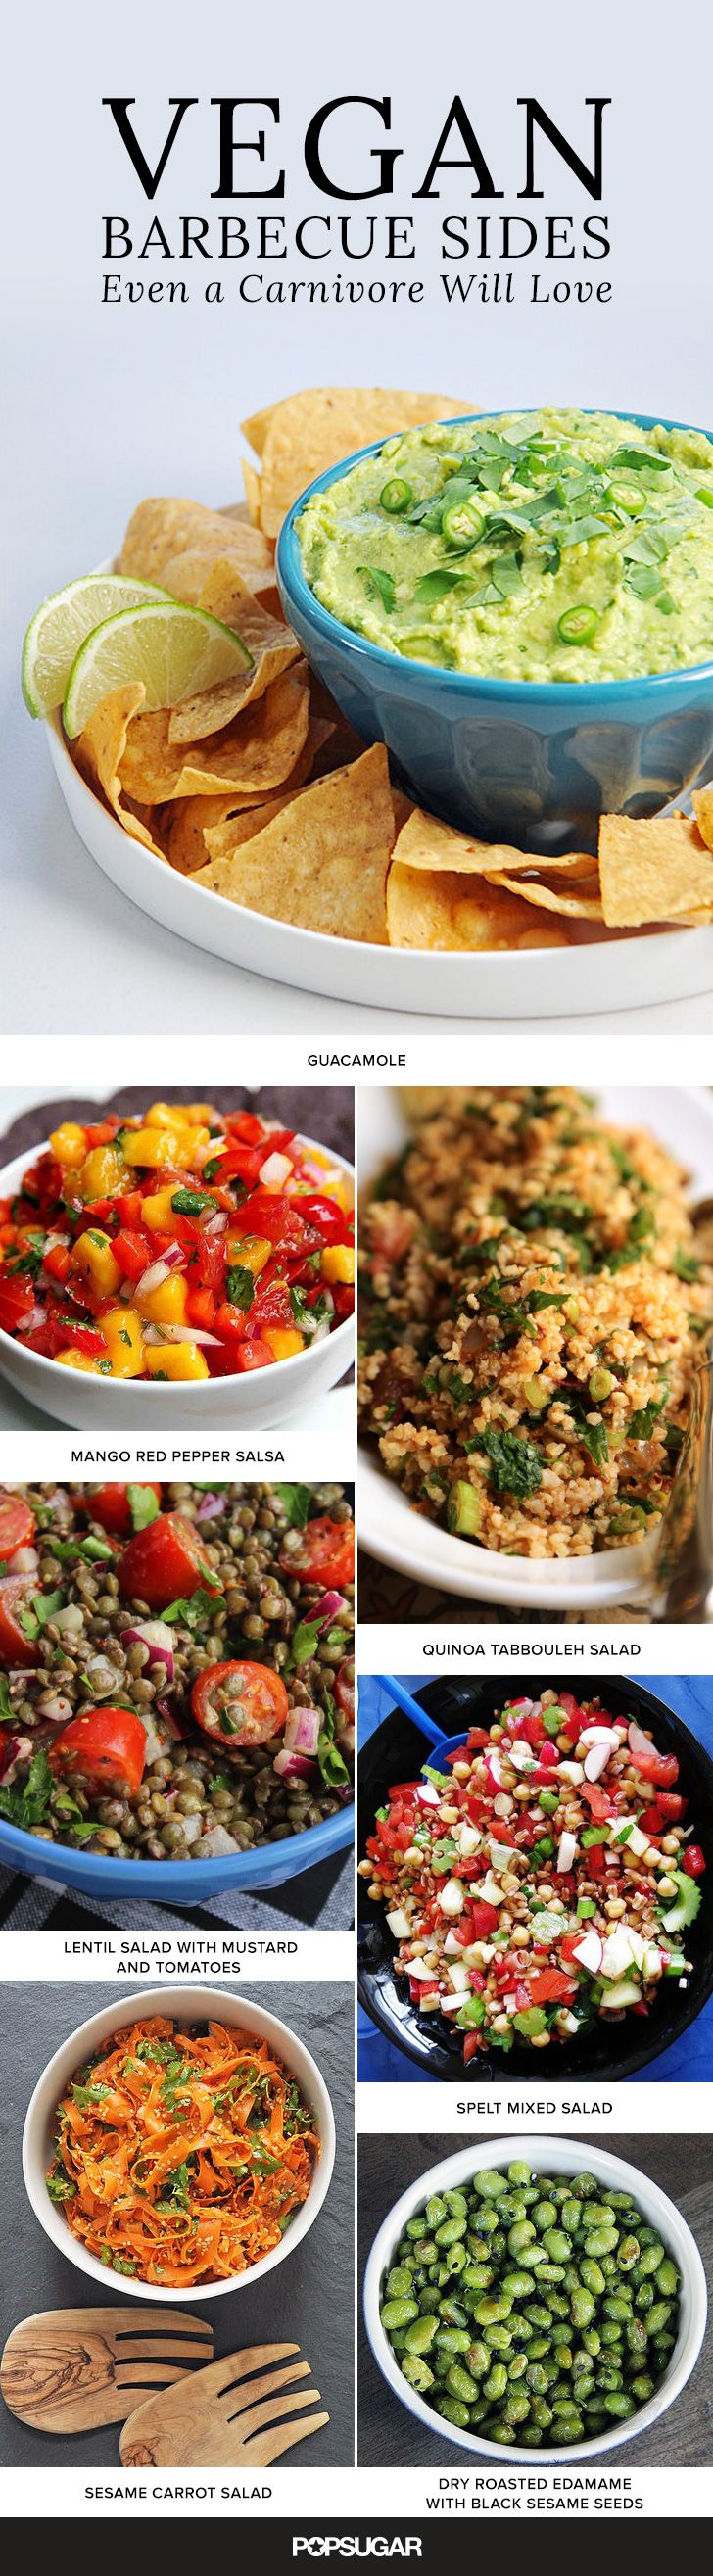 If you're planning a barbecue this Summer, here are 29 side dishes that will have vegan friends coming back for seconds.